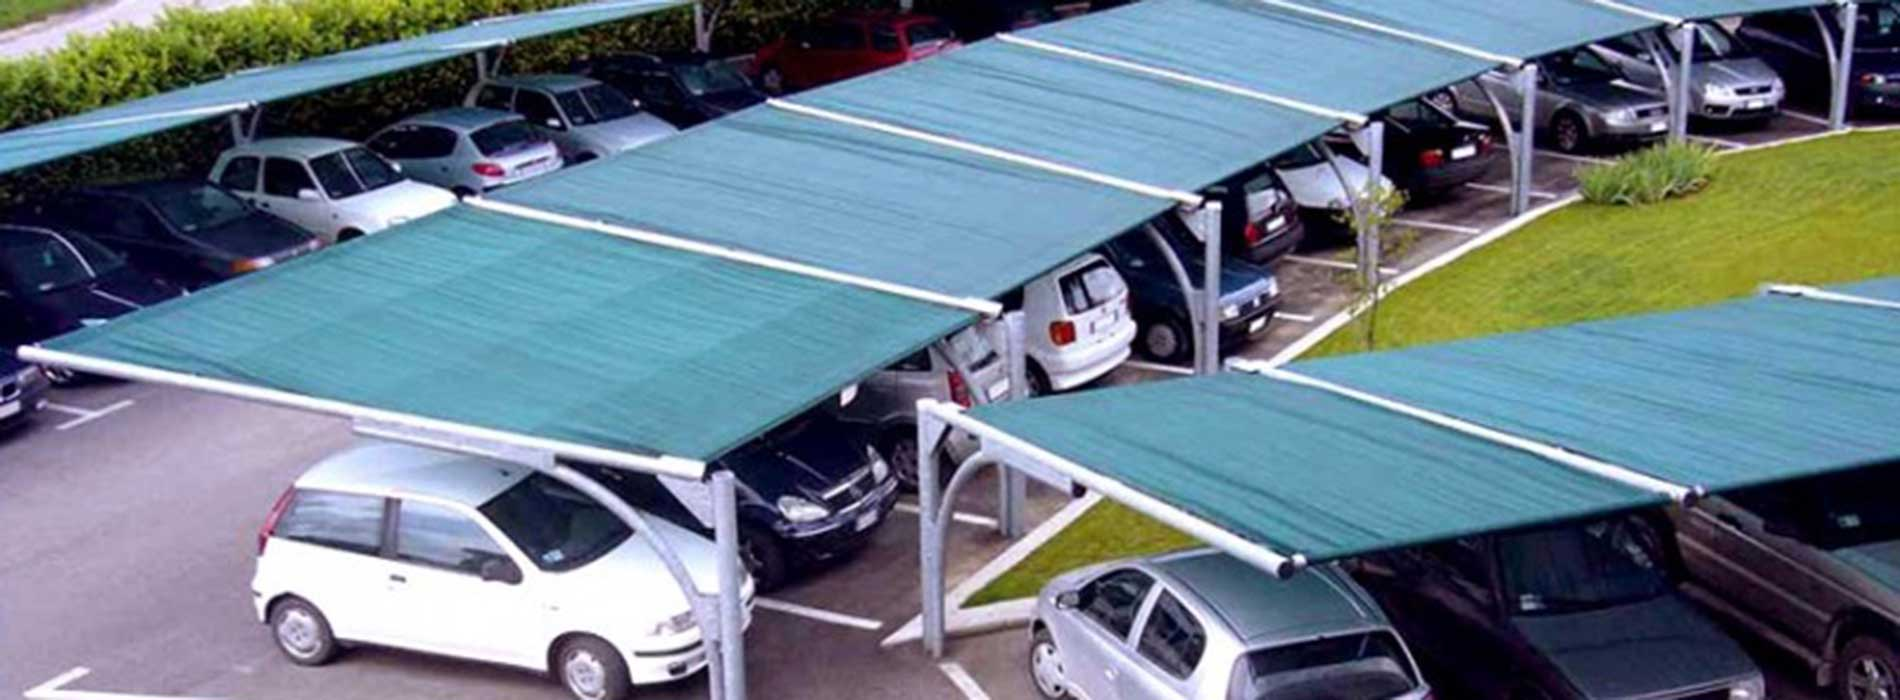 SHADE NETS FOR CAR PARKING